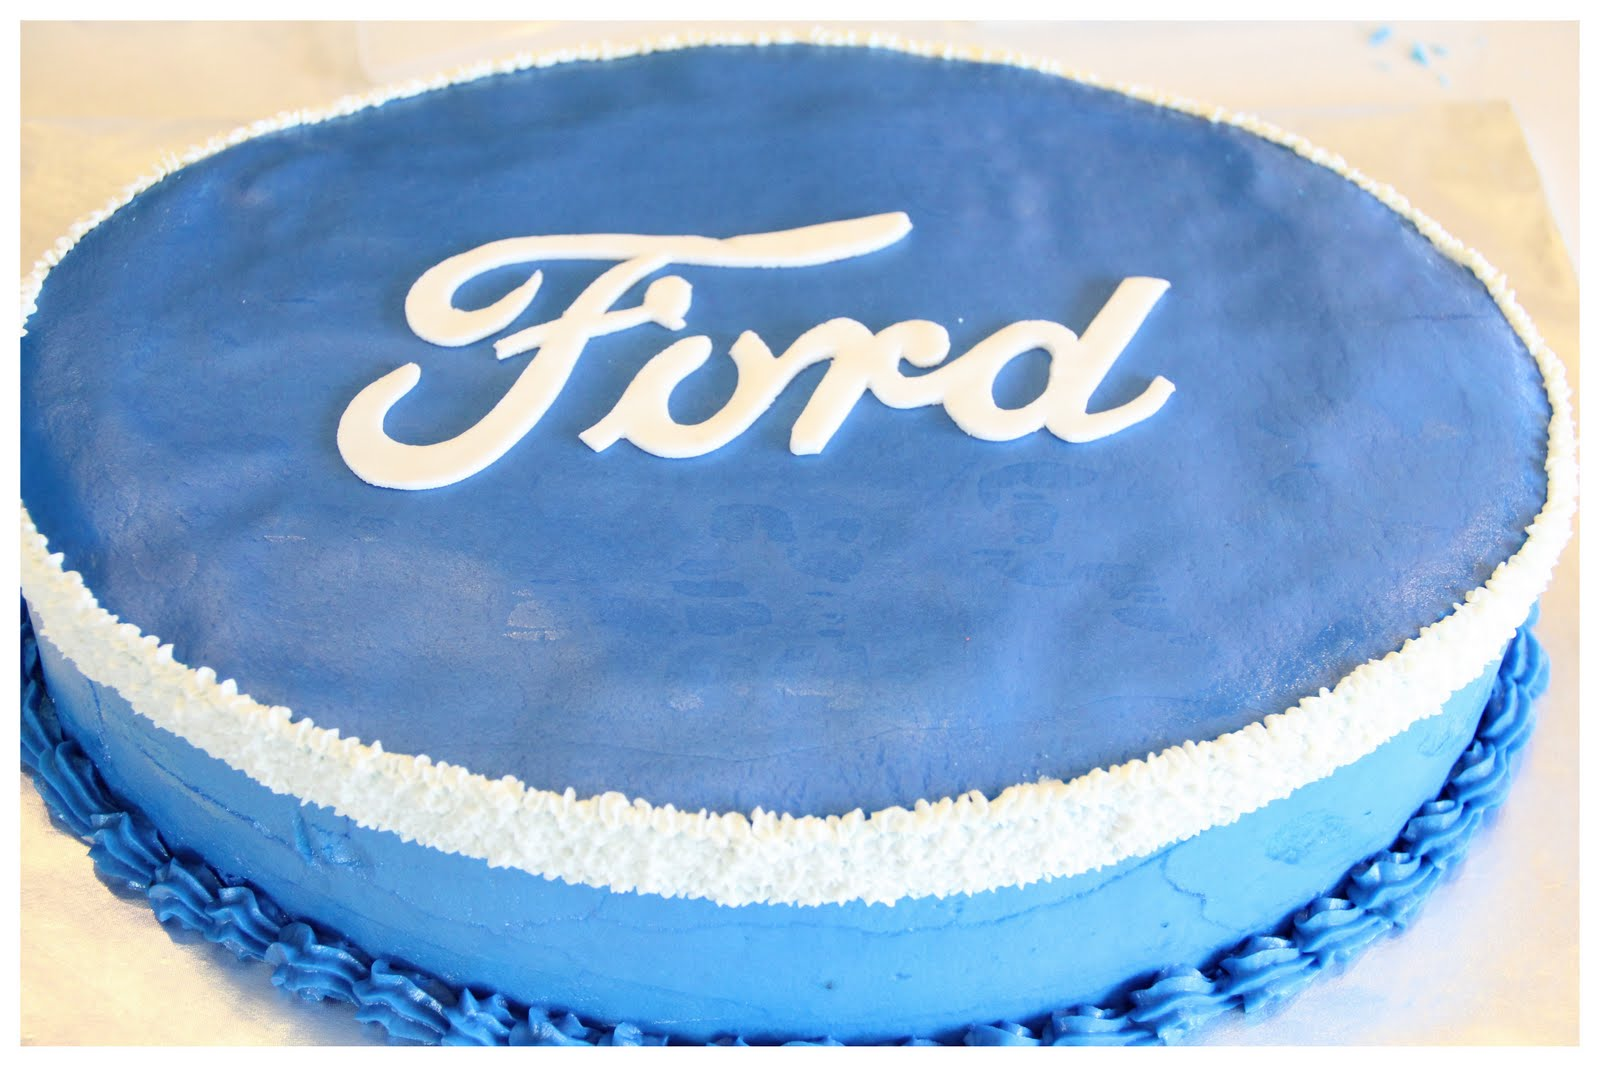 Carly S Cakes Ford Emblem